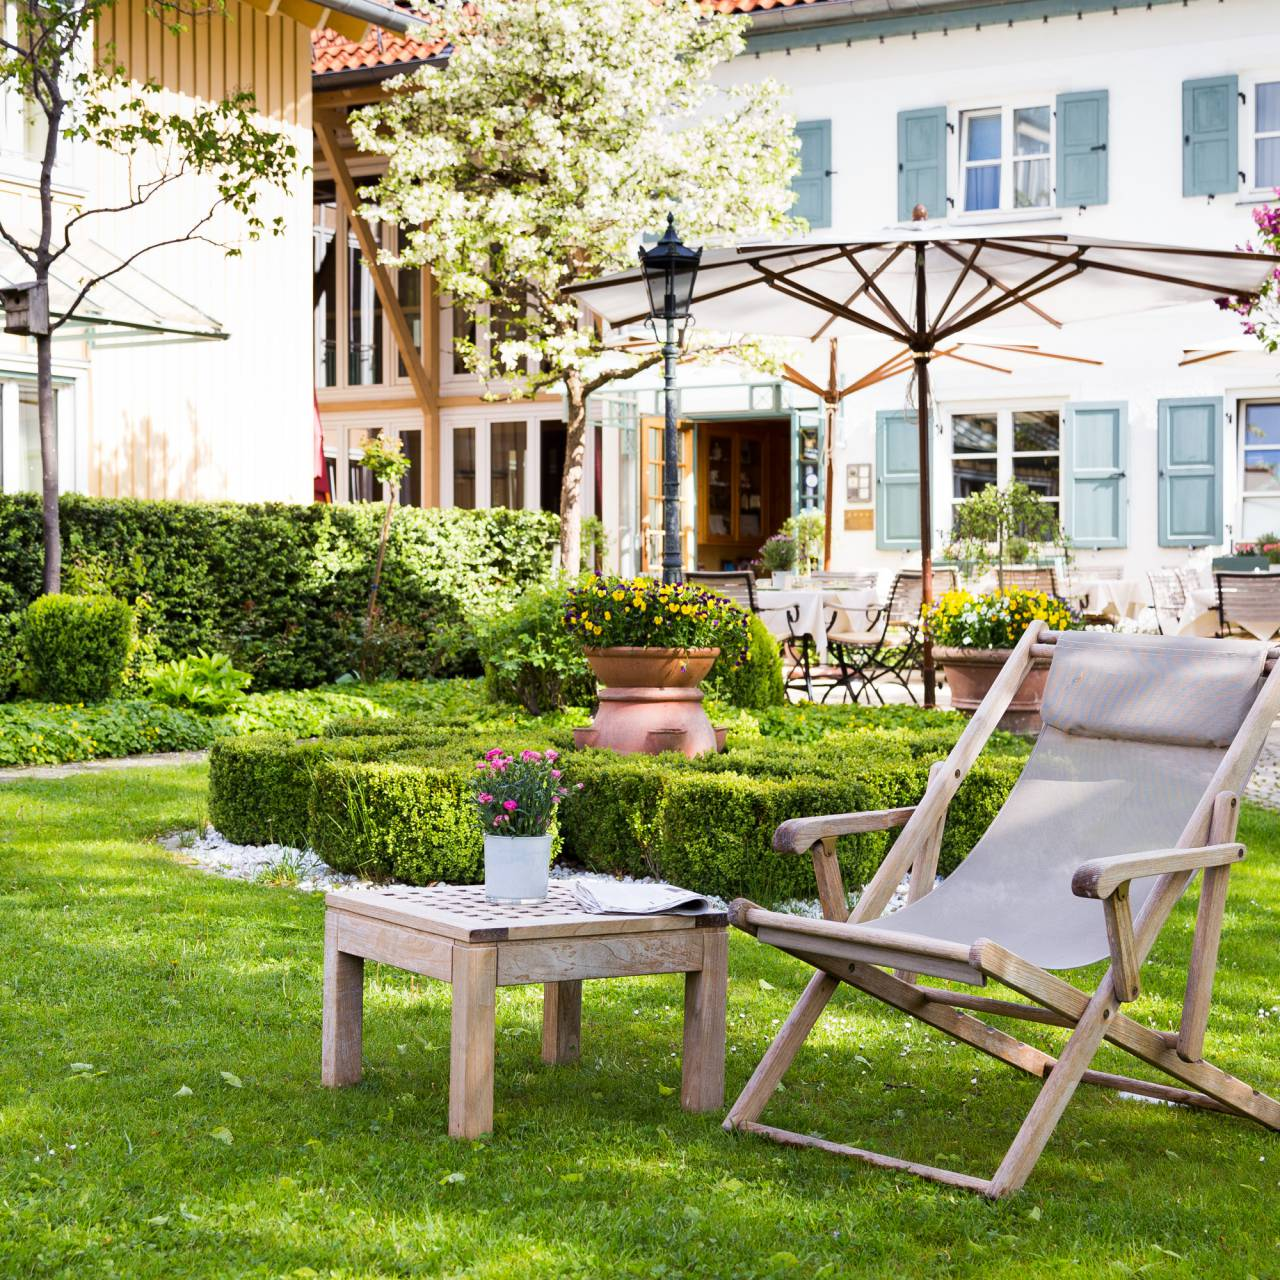 Garden in Hotel Seitner Hof in Pullach in the Isar Valley